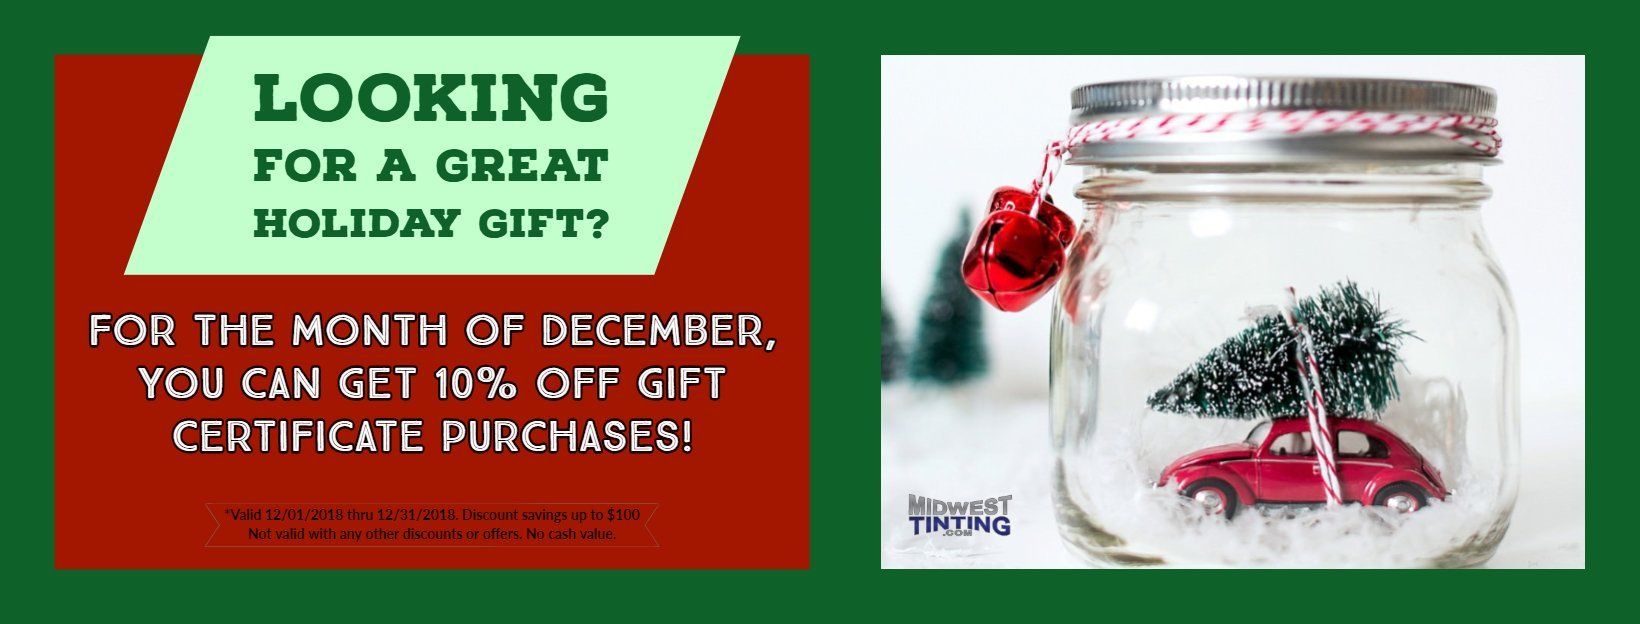 Holiday 10% OFF Promotion at Midwest Tinting in Kansas City